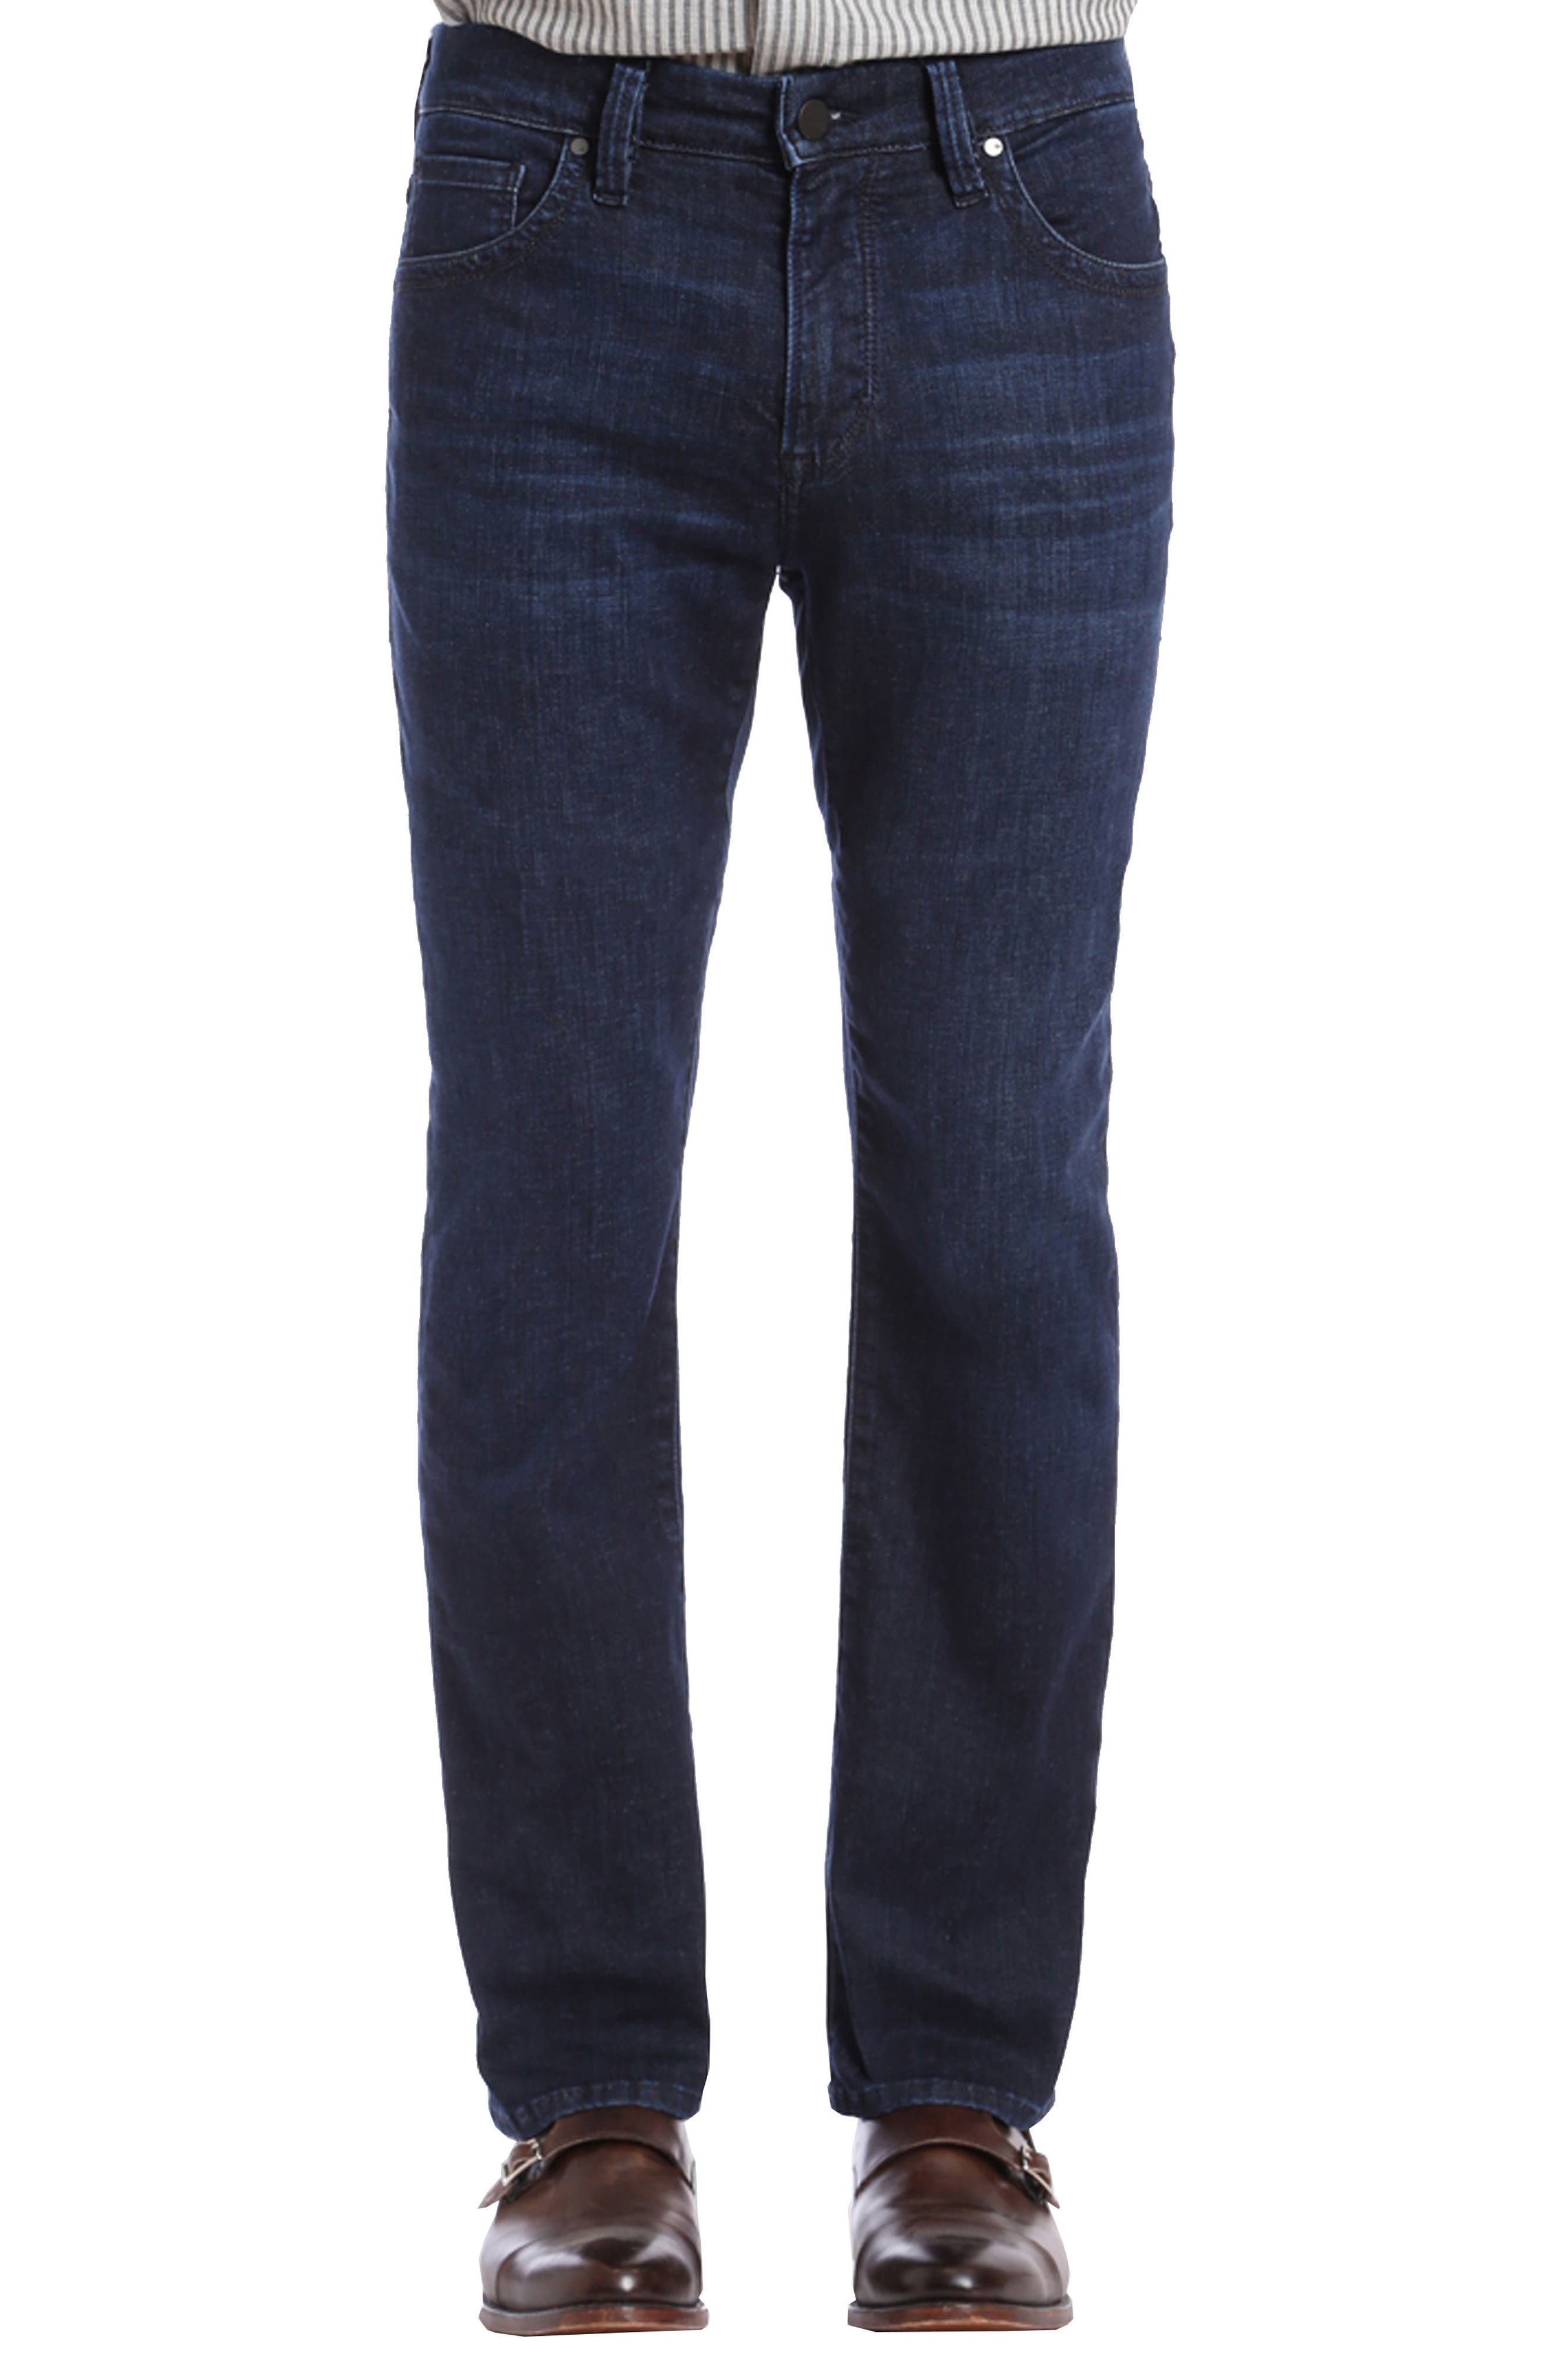 Courage Straight Fit Jeans,                         Main,                         color, 401